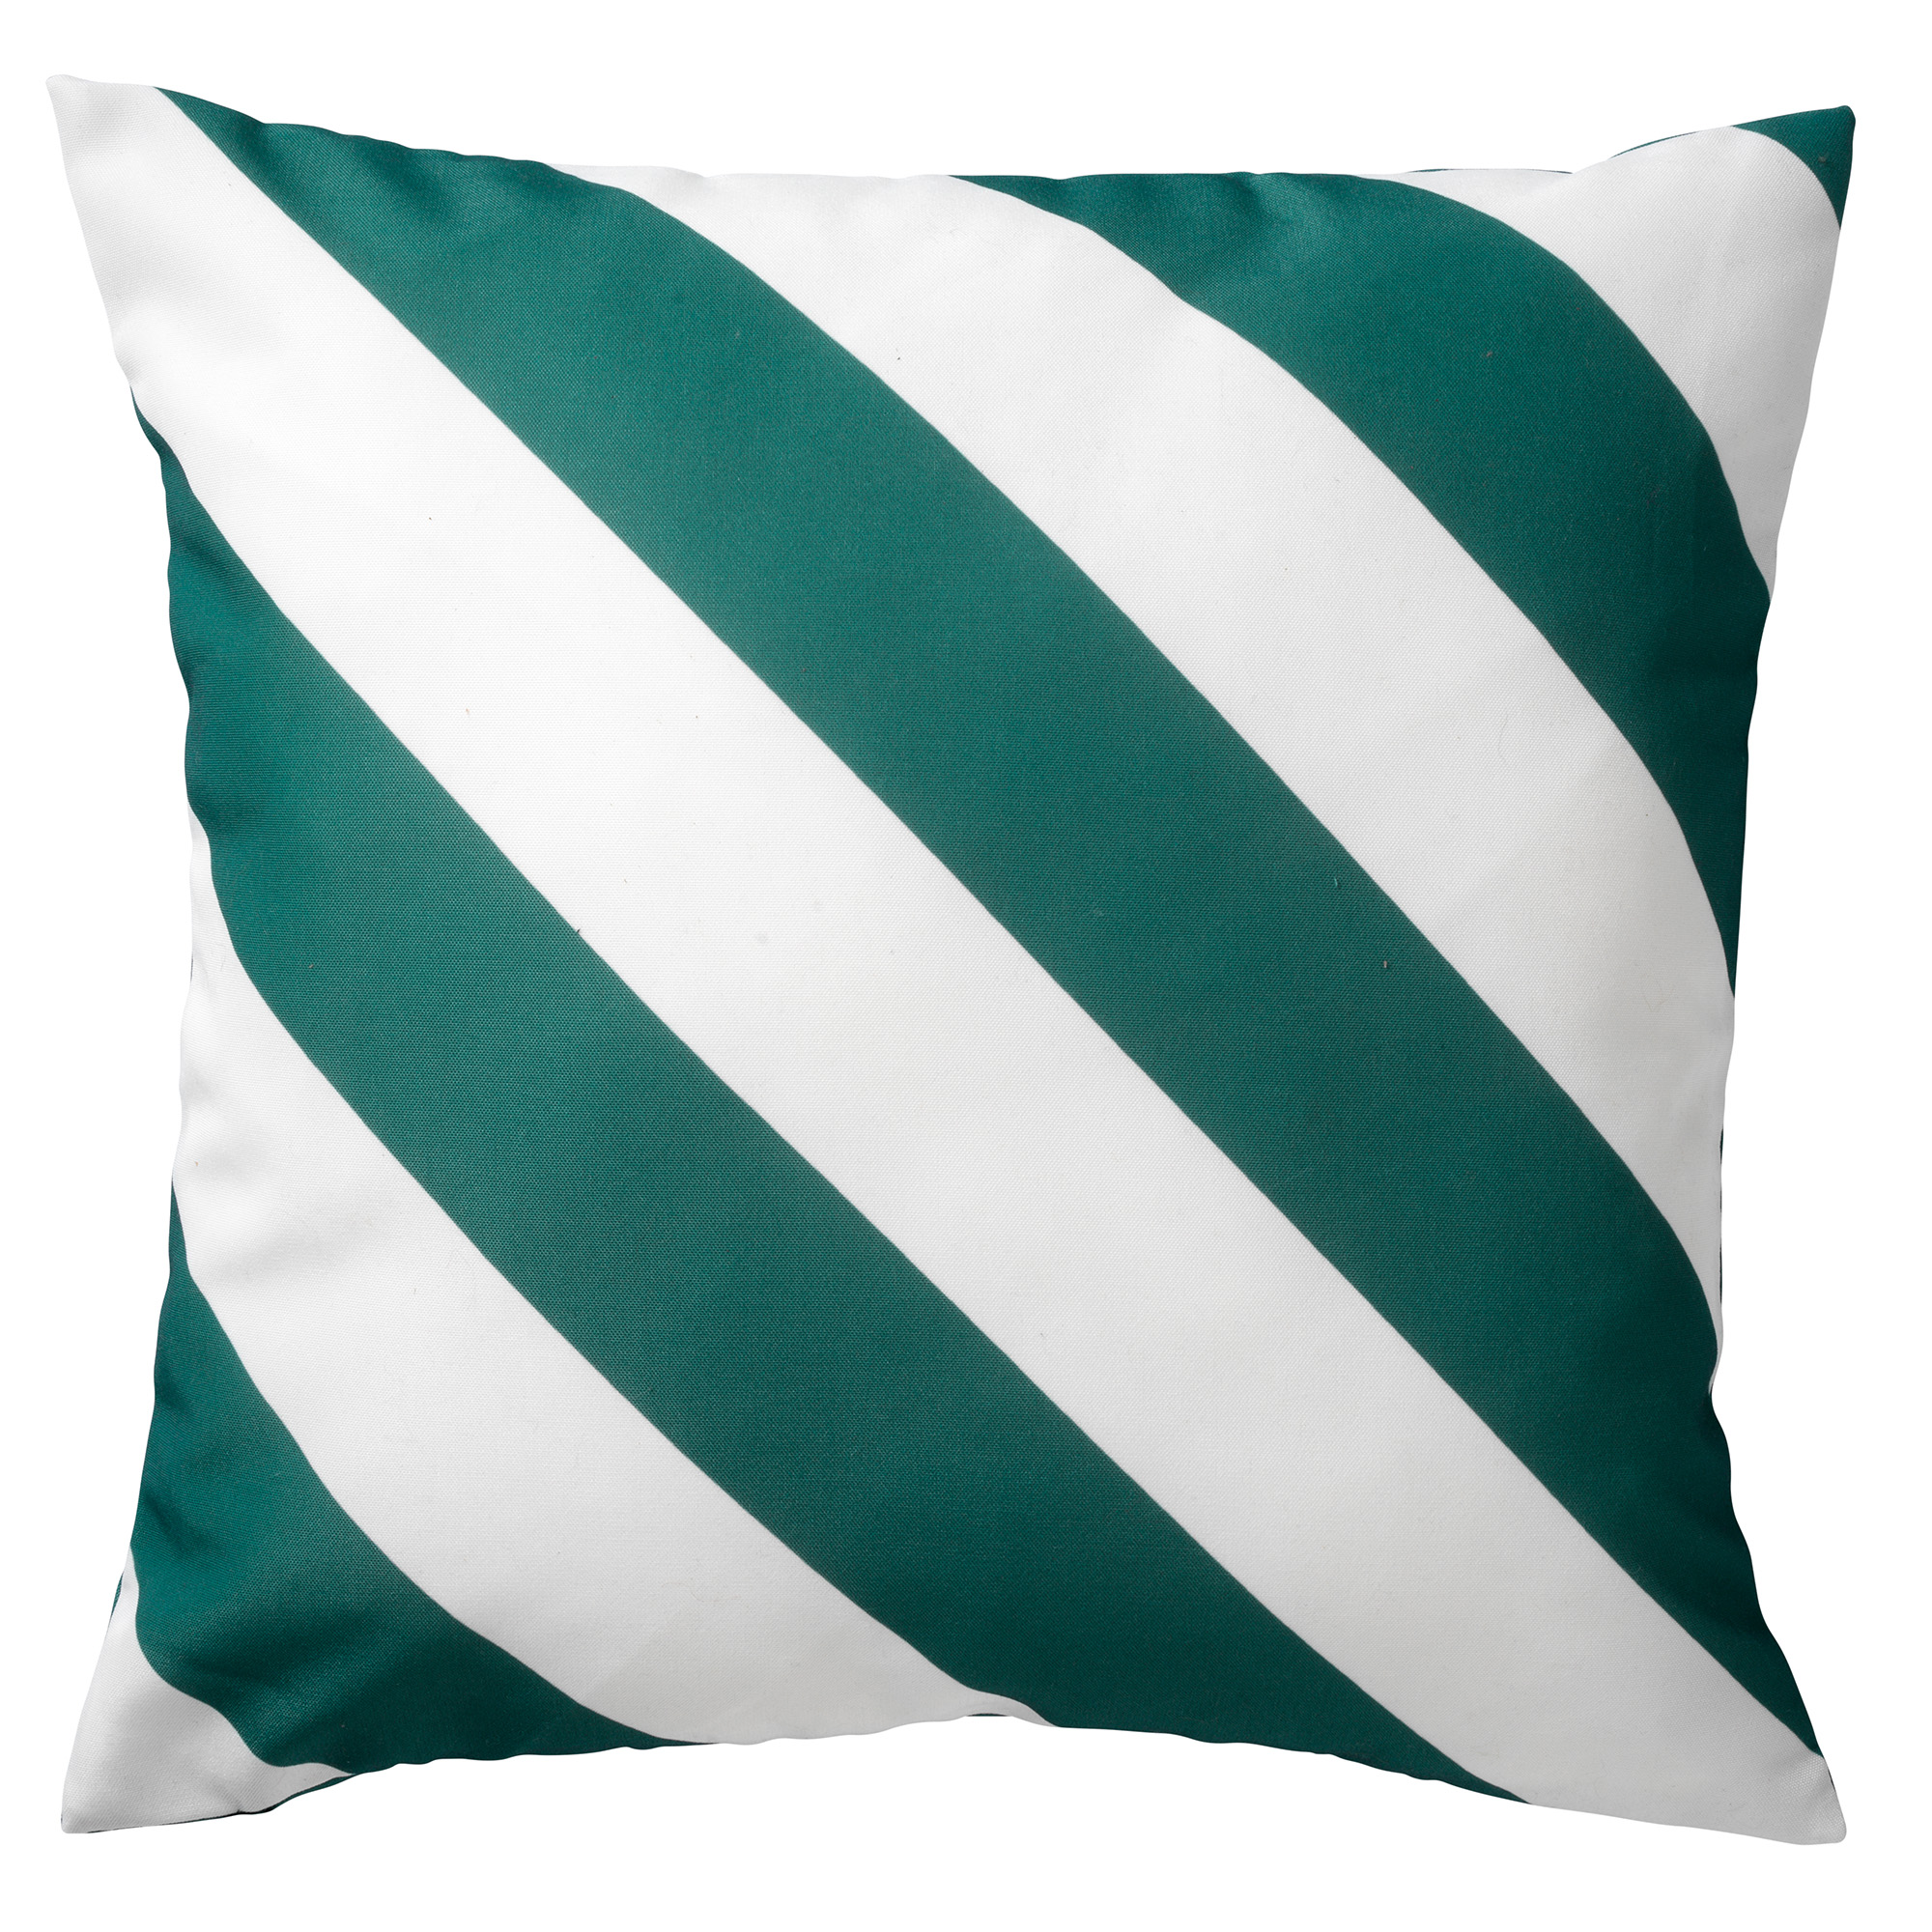 SANZENO - Kussenhoes outdoor Sagebrush Green 45x45 cm